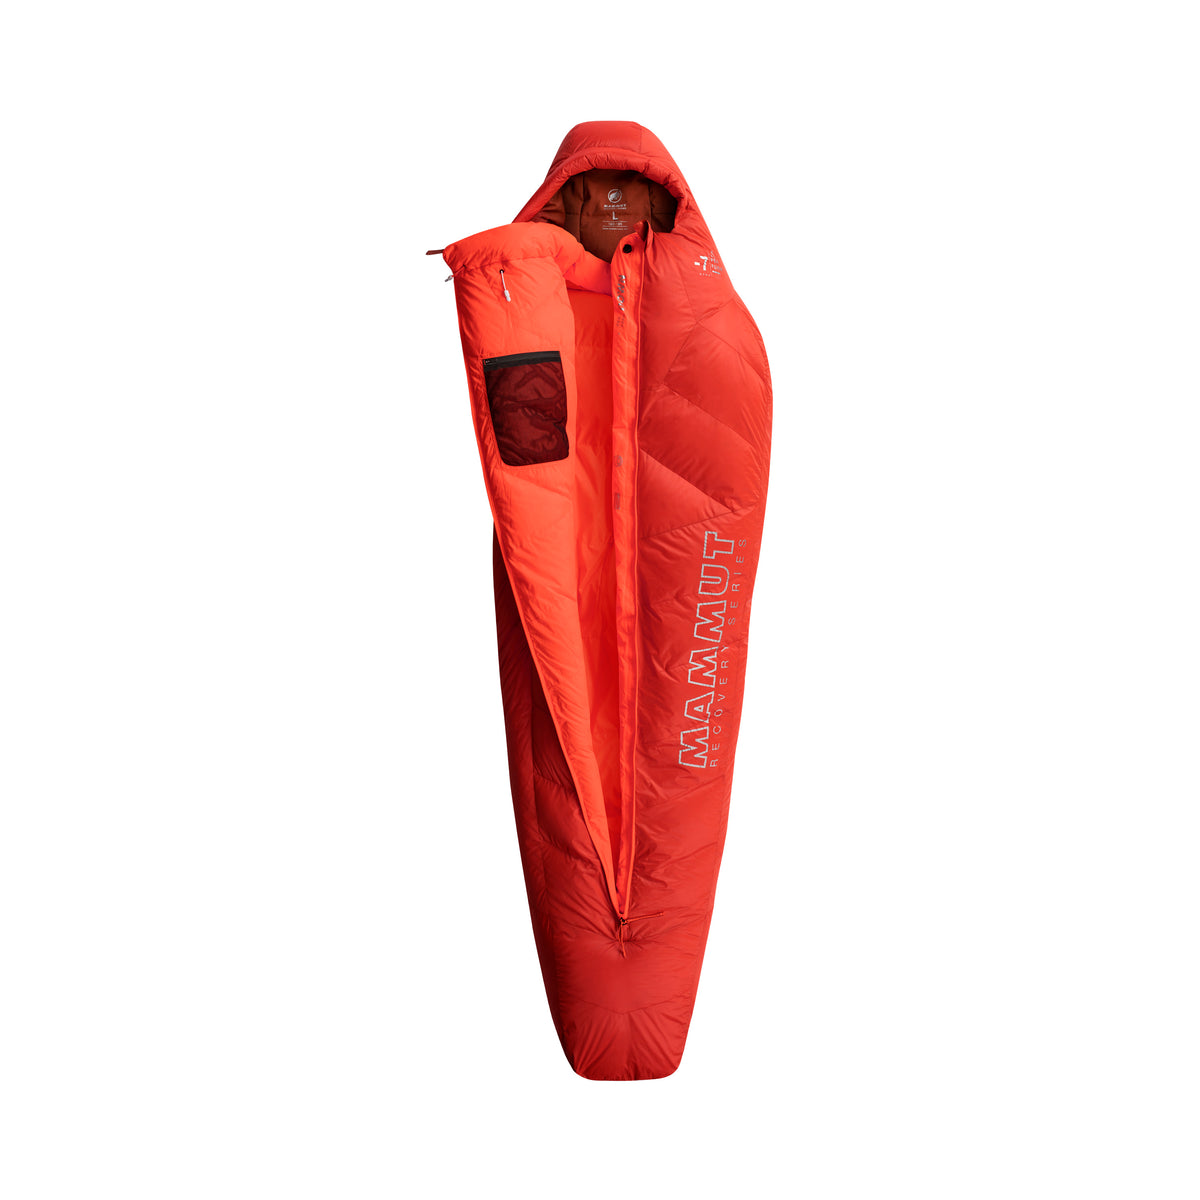 Mammut Perform Down Bag -7C (Safety Orange)